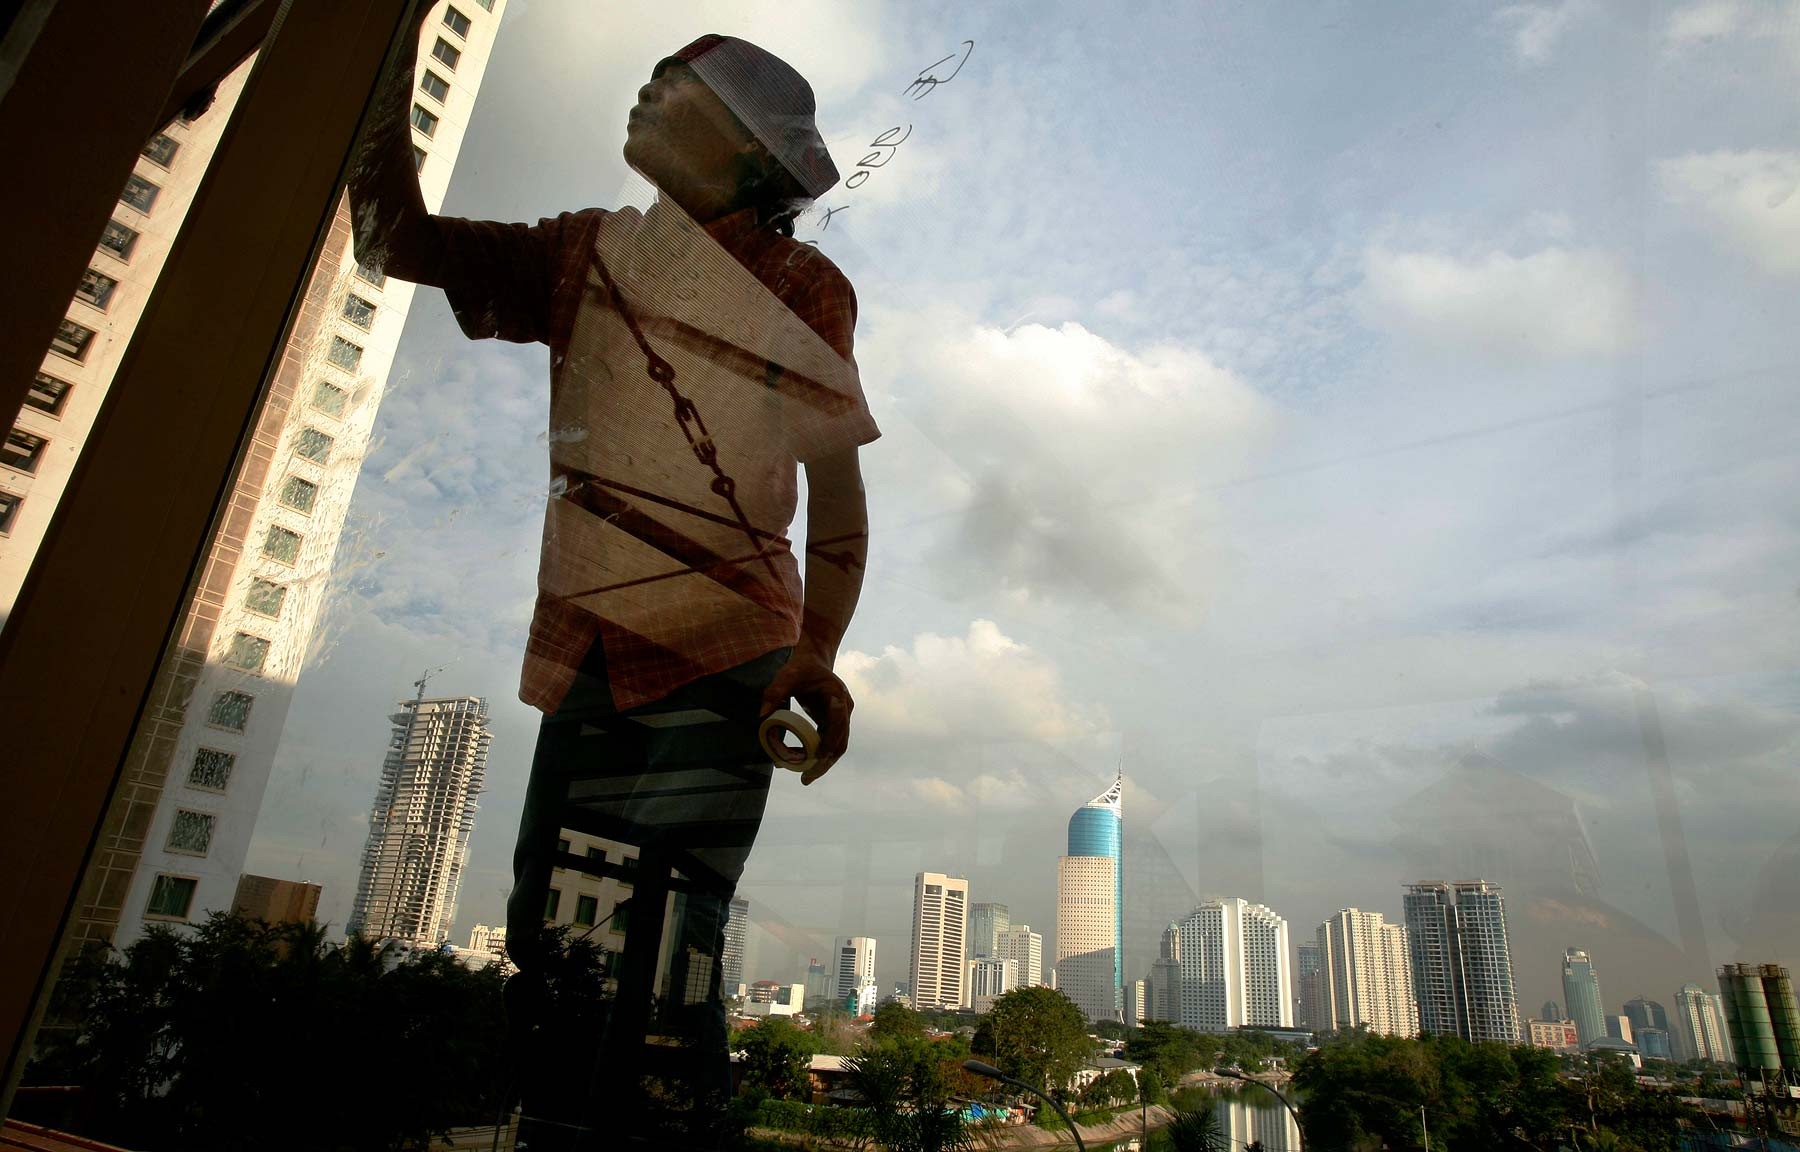 Indonesian Laborer washes window skyscrapers in Jakarta Indonesia